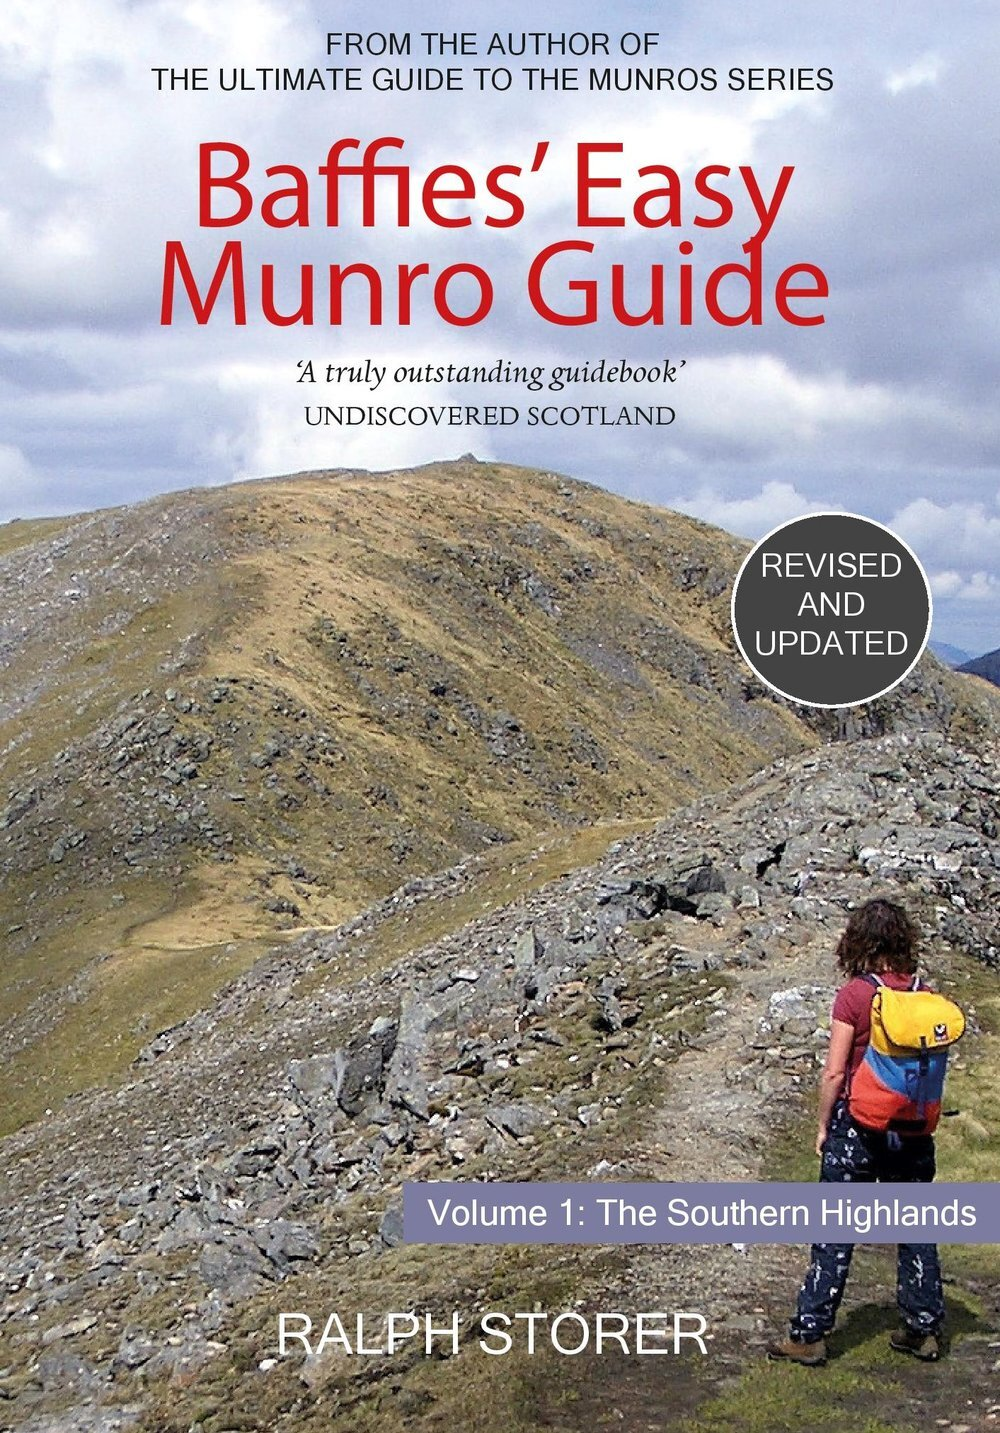 Baffies' Easy Guide to the Munro Volume 1 The Souther Highlands Luath Press.jpg